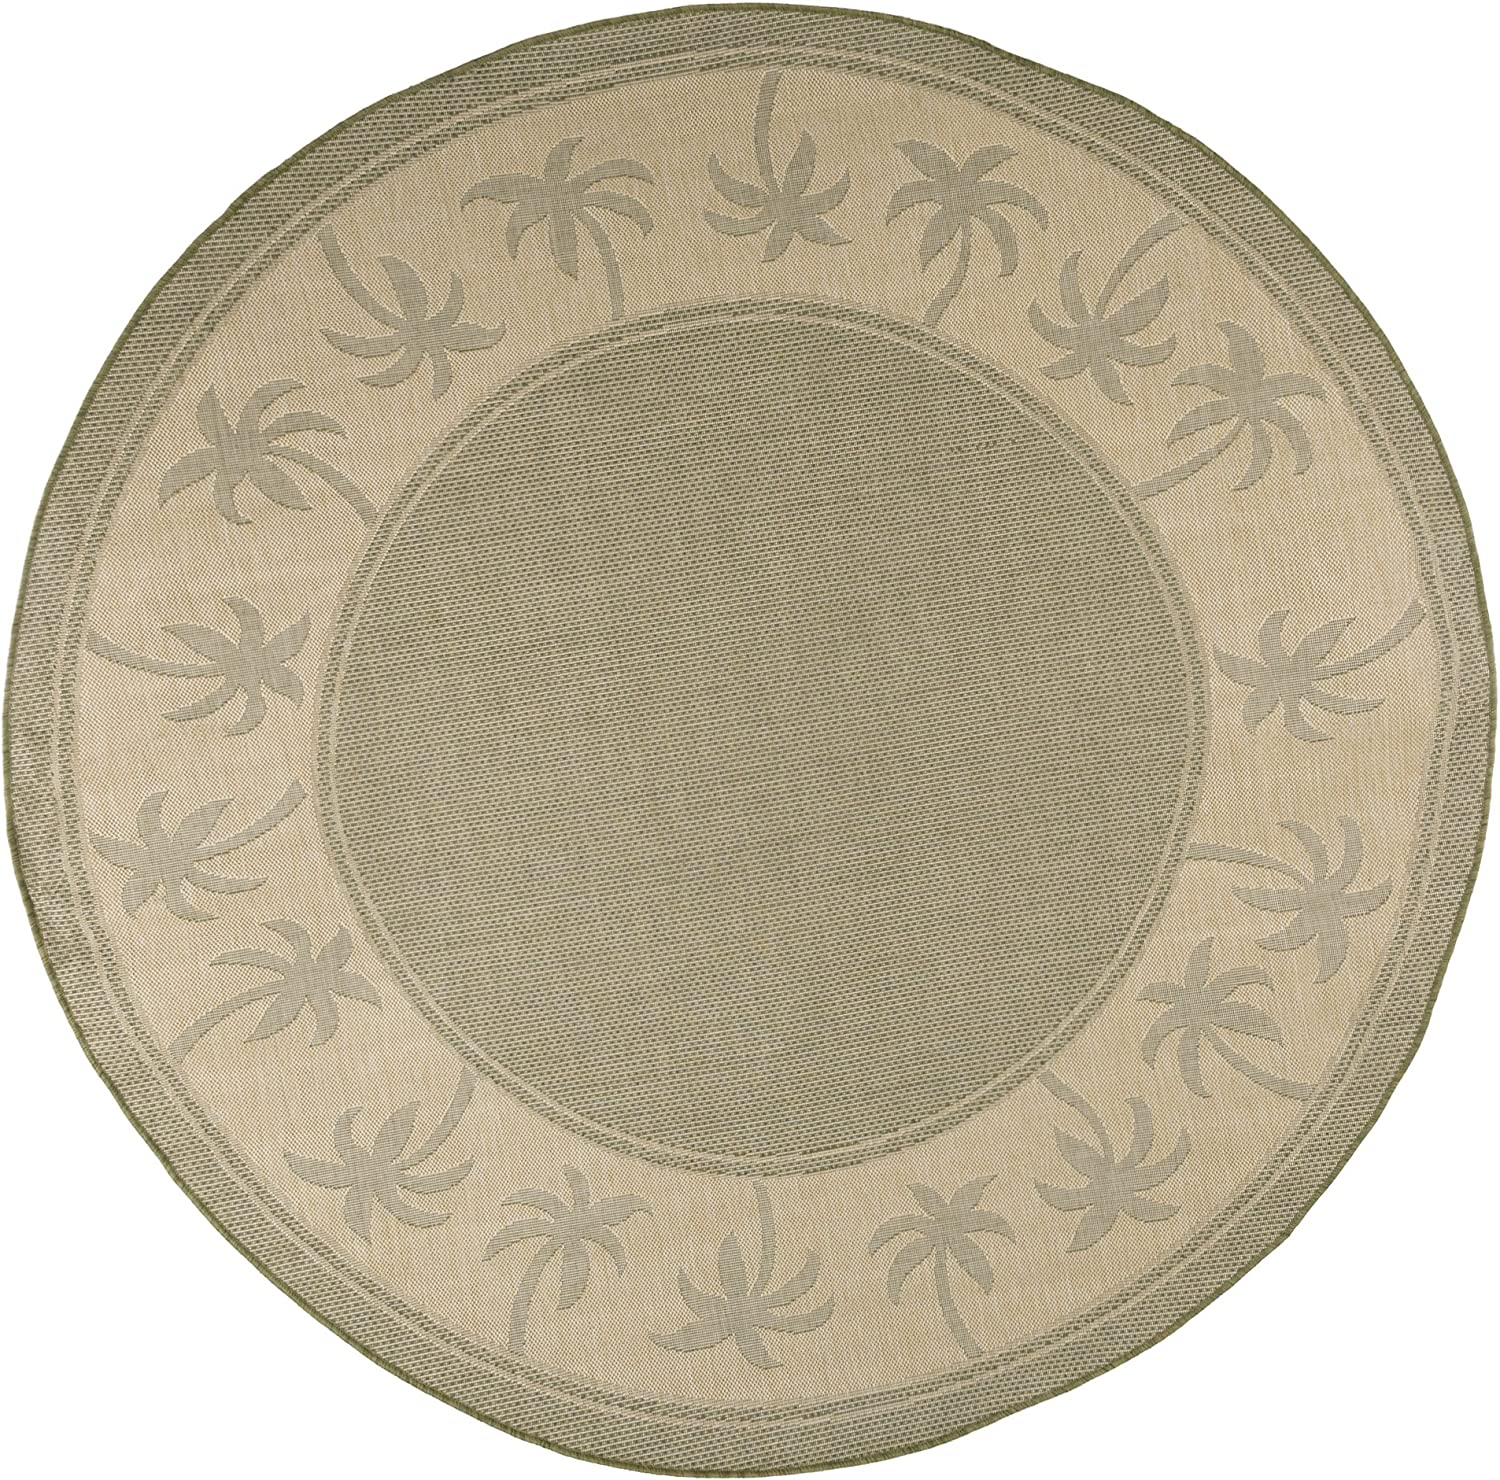 Amazon Com Round Area Rug 8 Foot Stain Resistant Indoor Outdoor Round Rug With Palm Tree Design By Lavish Home Green And Beige Accent Rug For Home Décor Furniture Decor